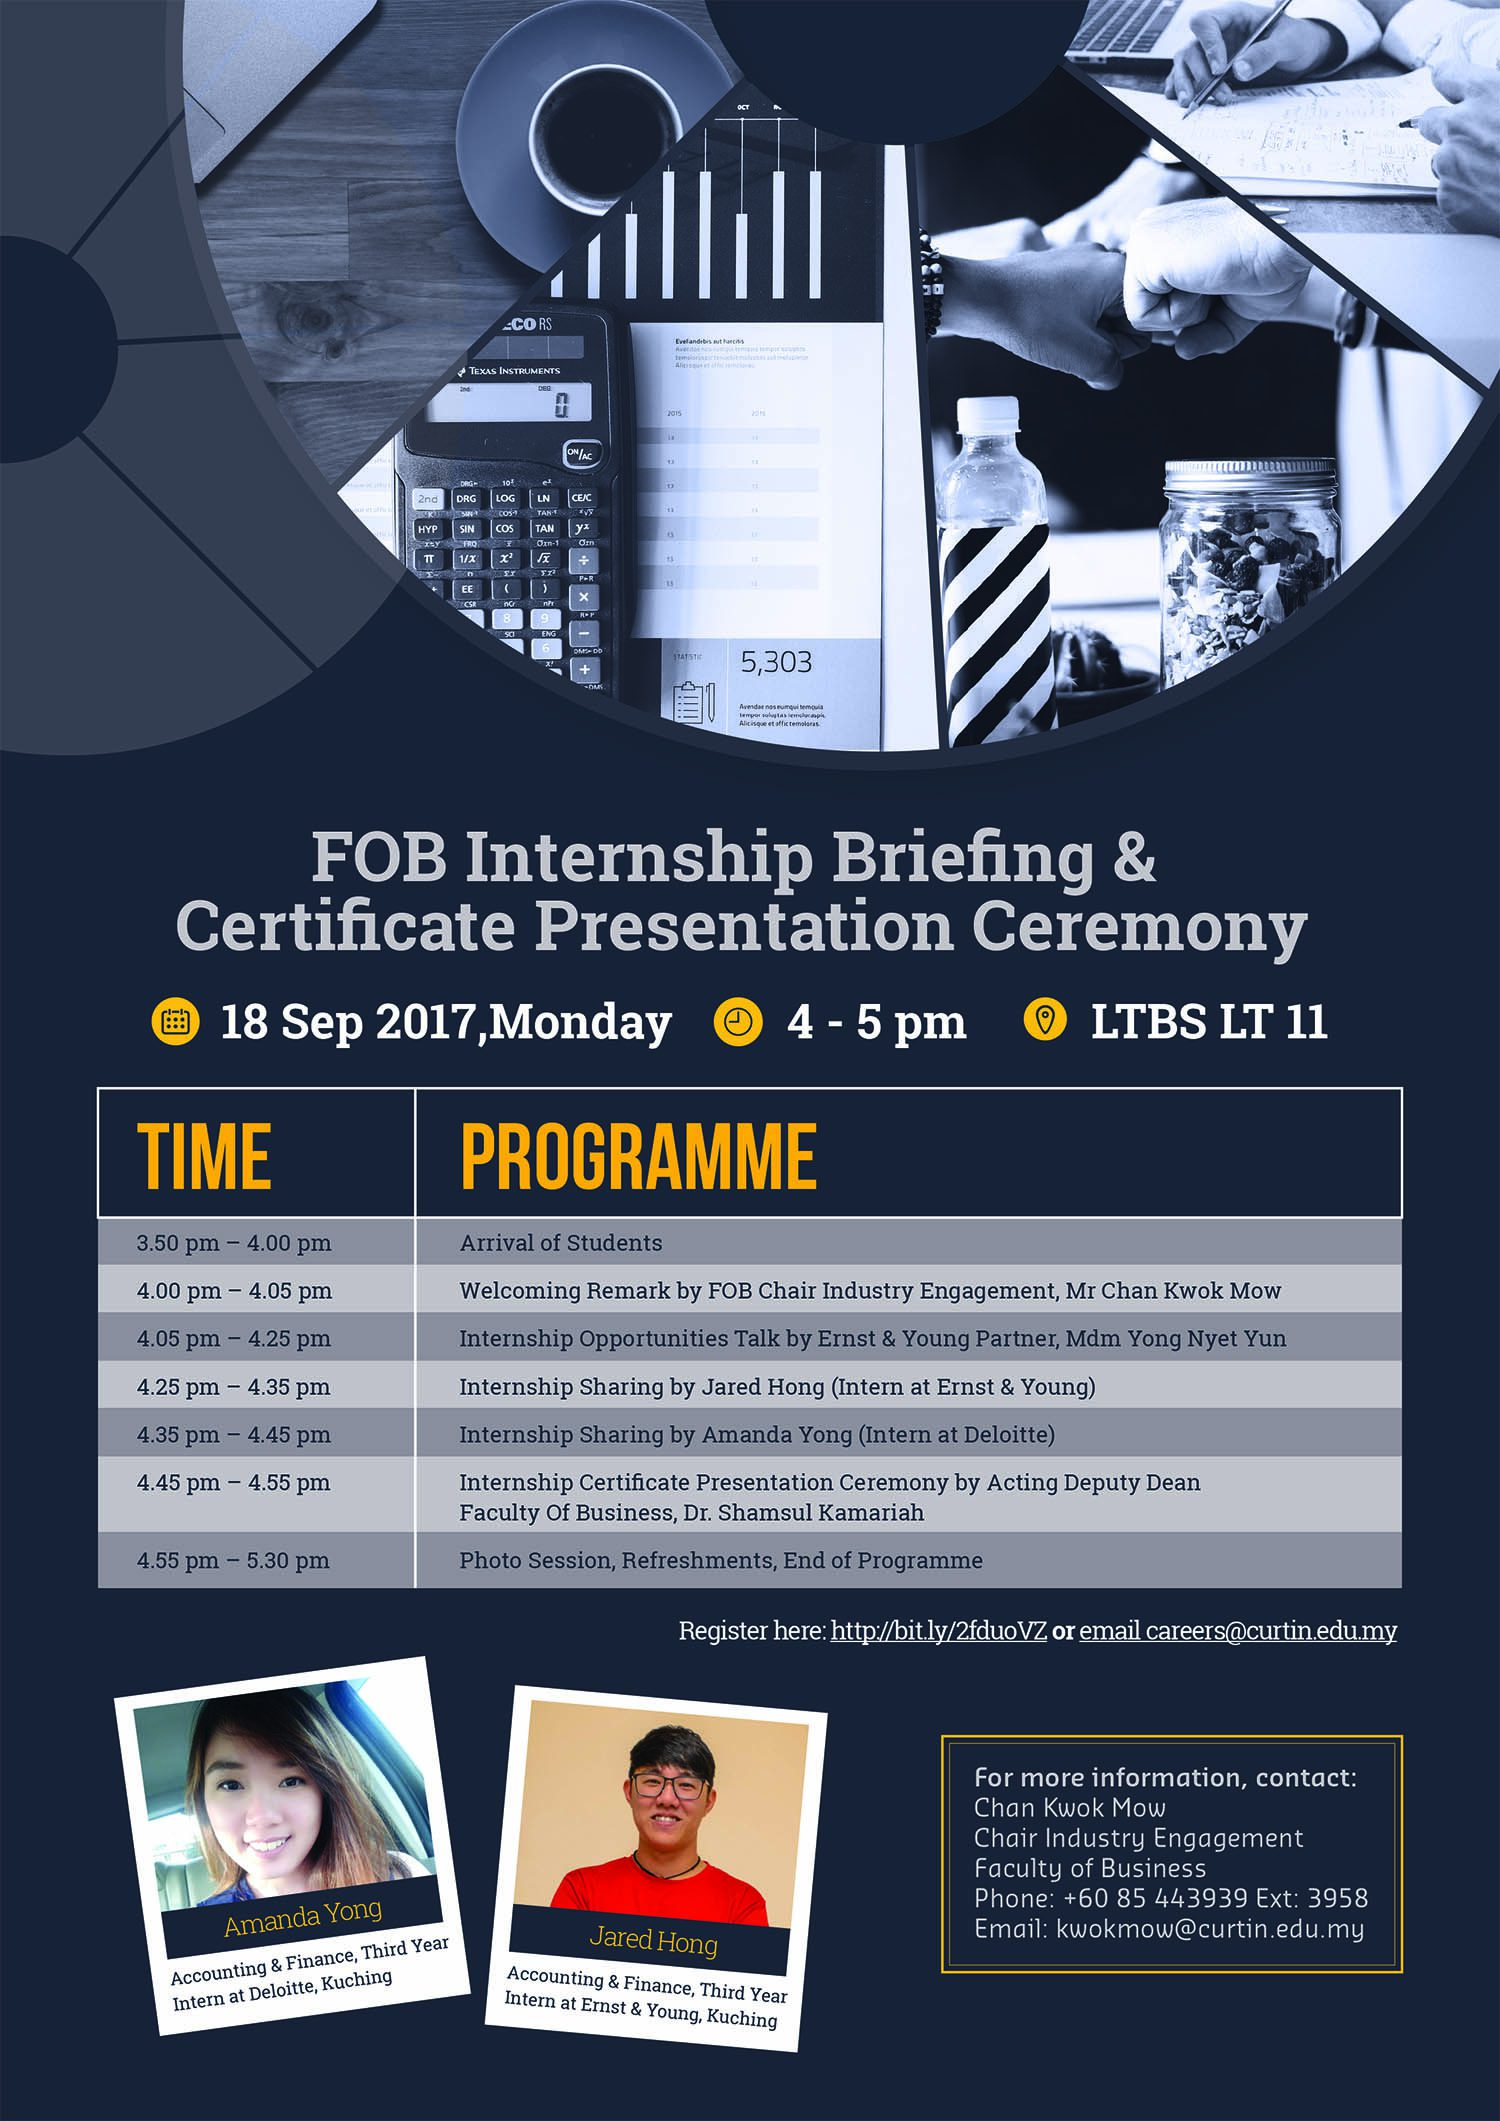 FOB Internship Briefing